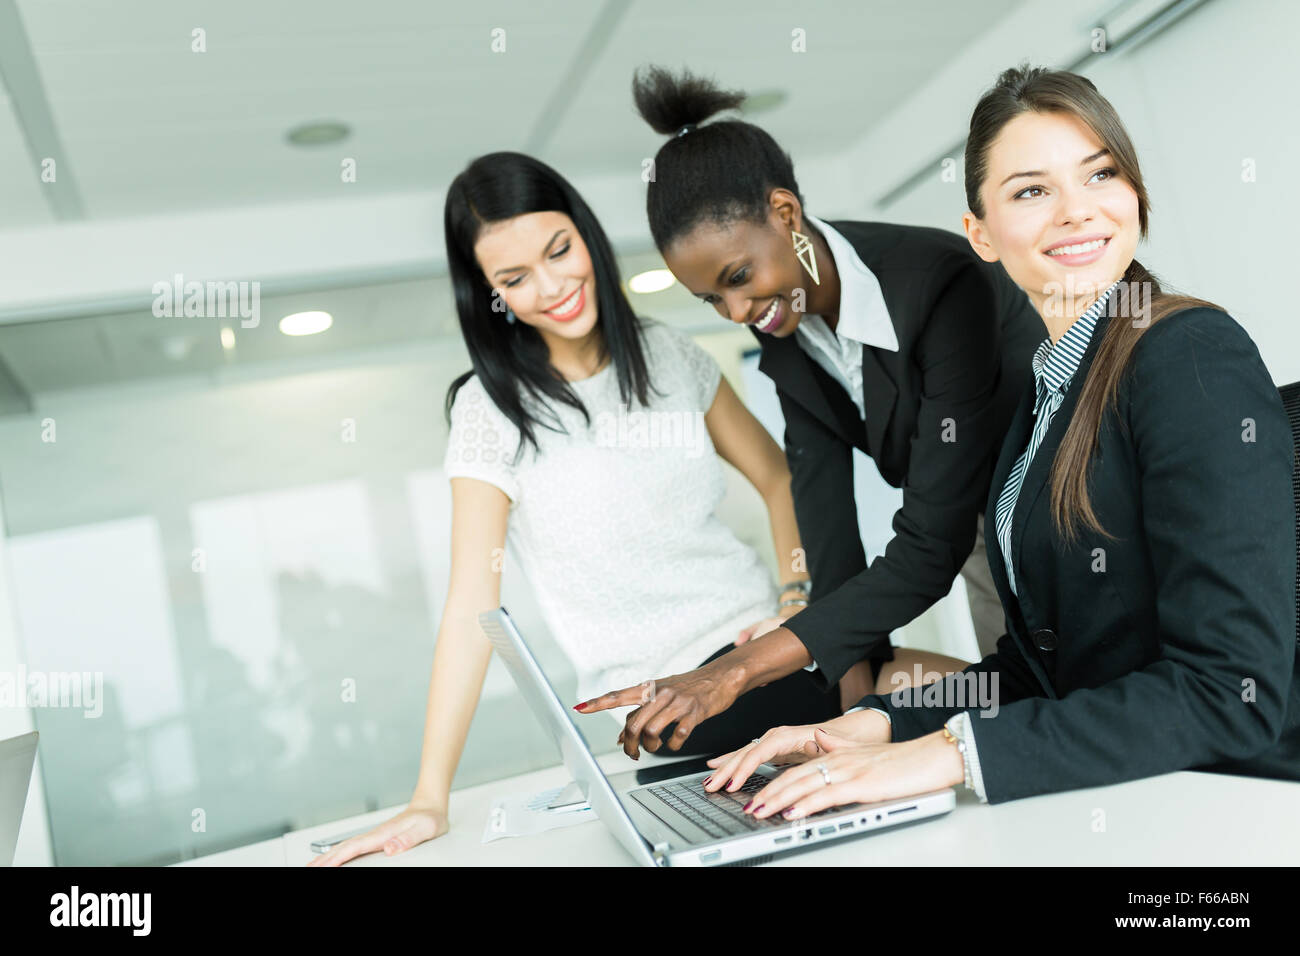 Businesswomen exchanging thoughts in a nice office environment while working on a laptop - Stock Image